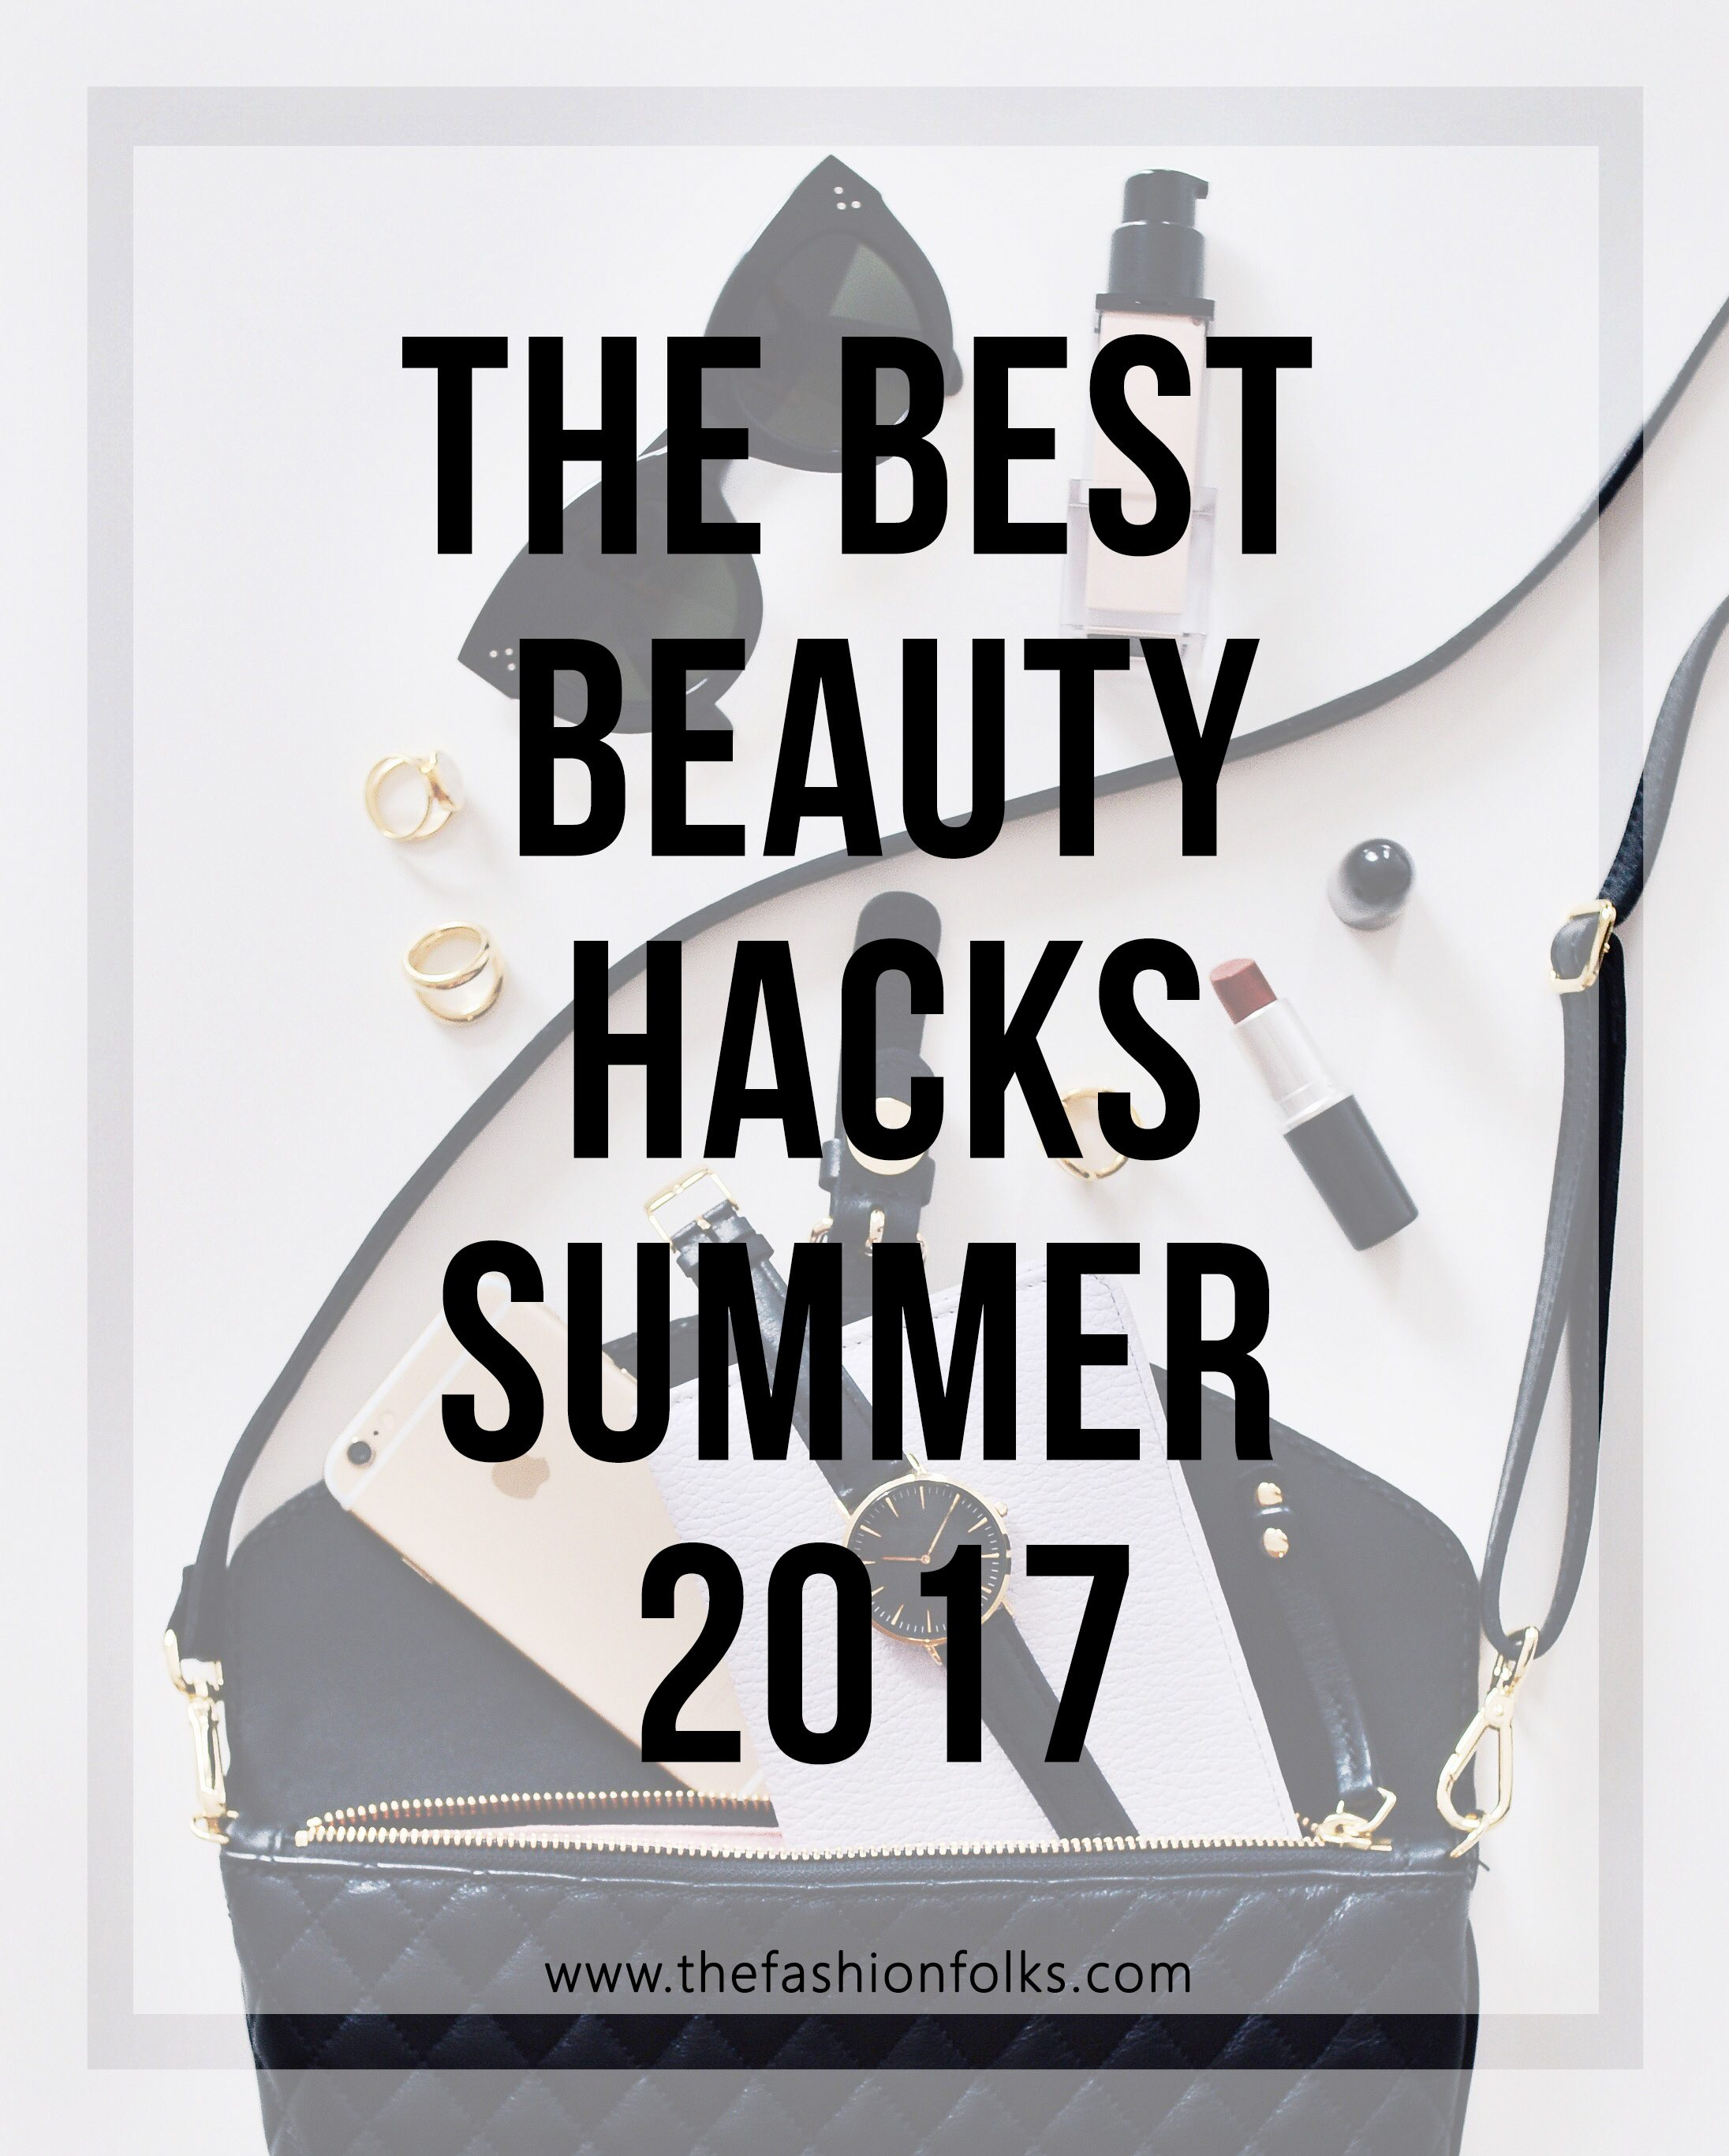 the best beauty hacks summer 2017 | The Fashion Folks